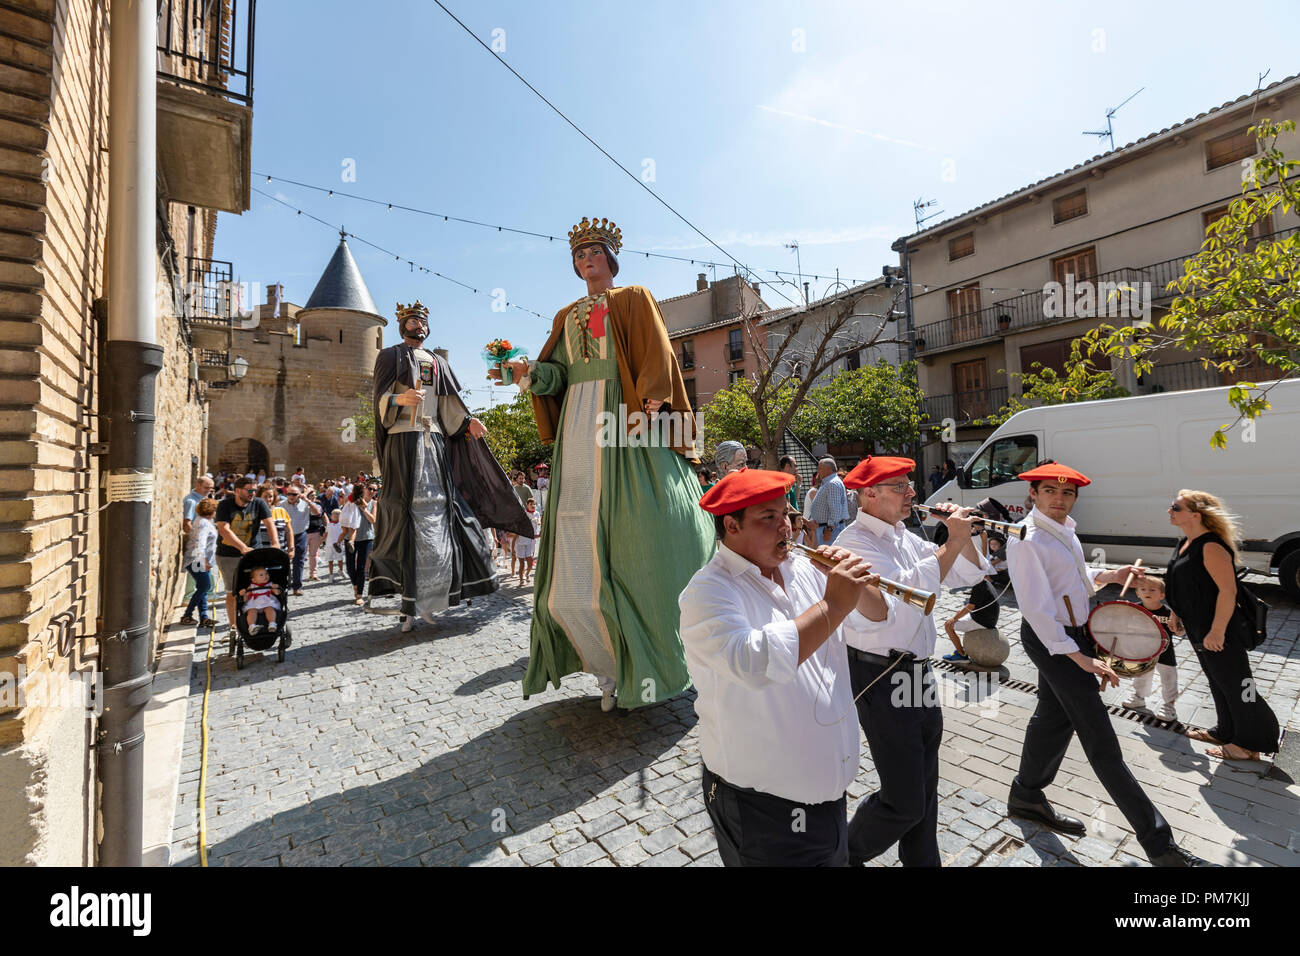 Gigantes y Cabezudos fiesta 2018, Giants and Big-Head parade, in Olite, Navarra, Spain Stock Photo